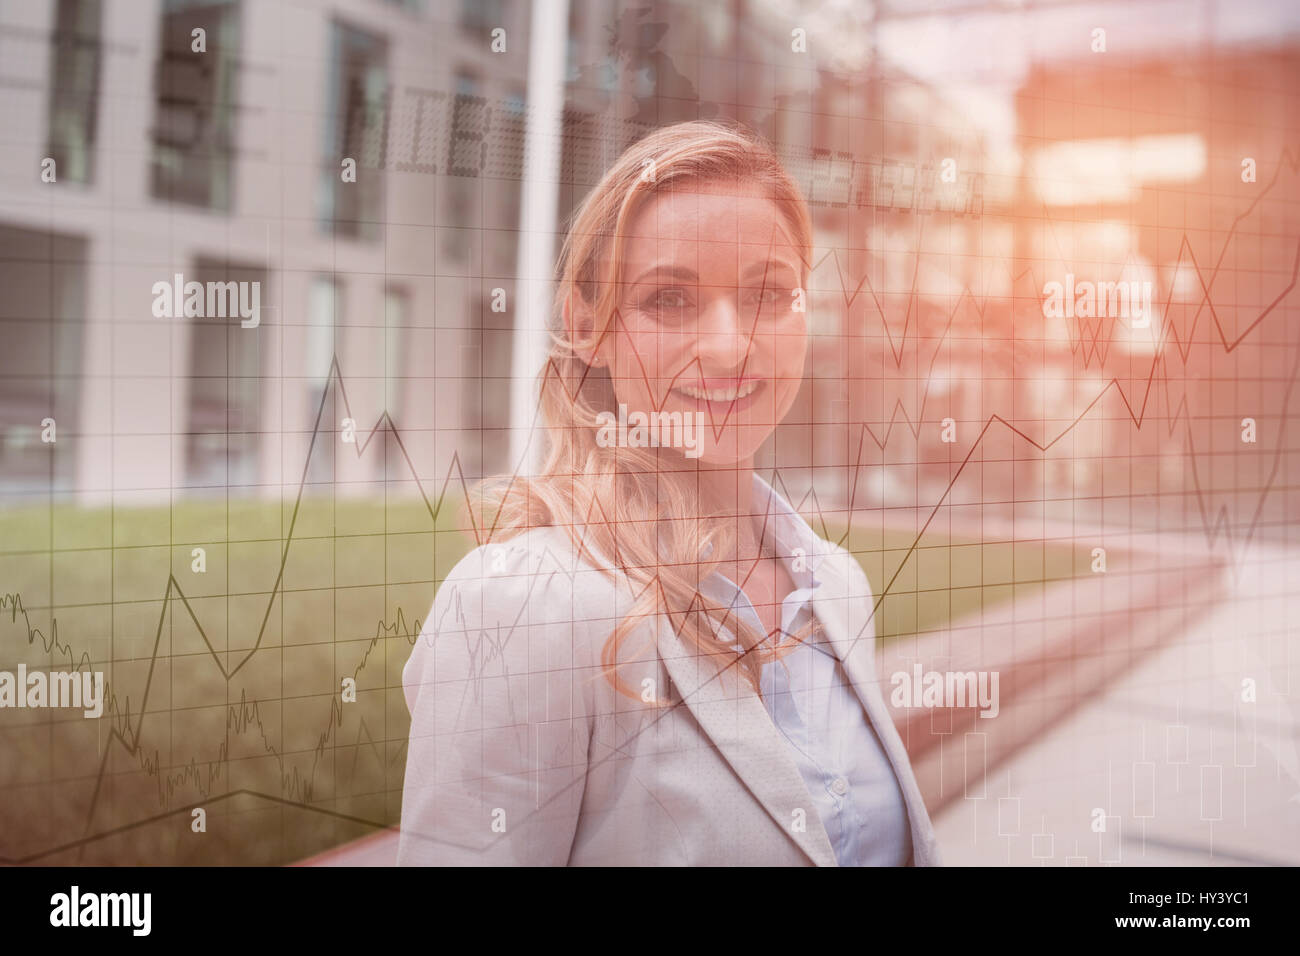 Stocks and shares against smiling businesswoman standing in office premises - Stock Image